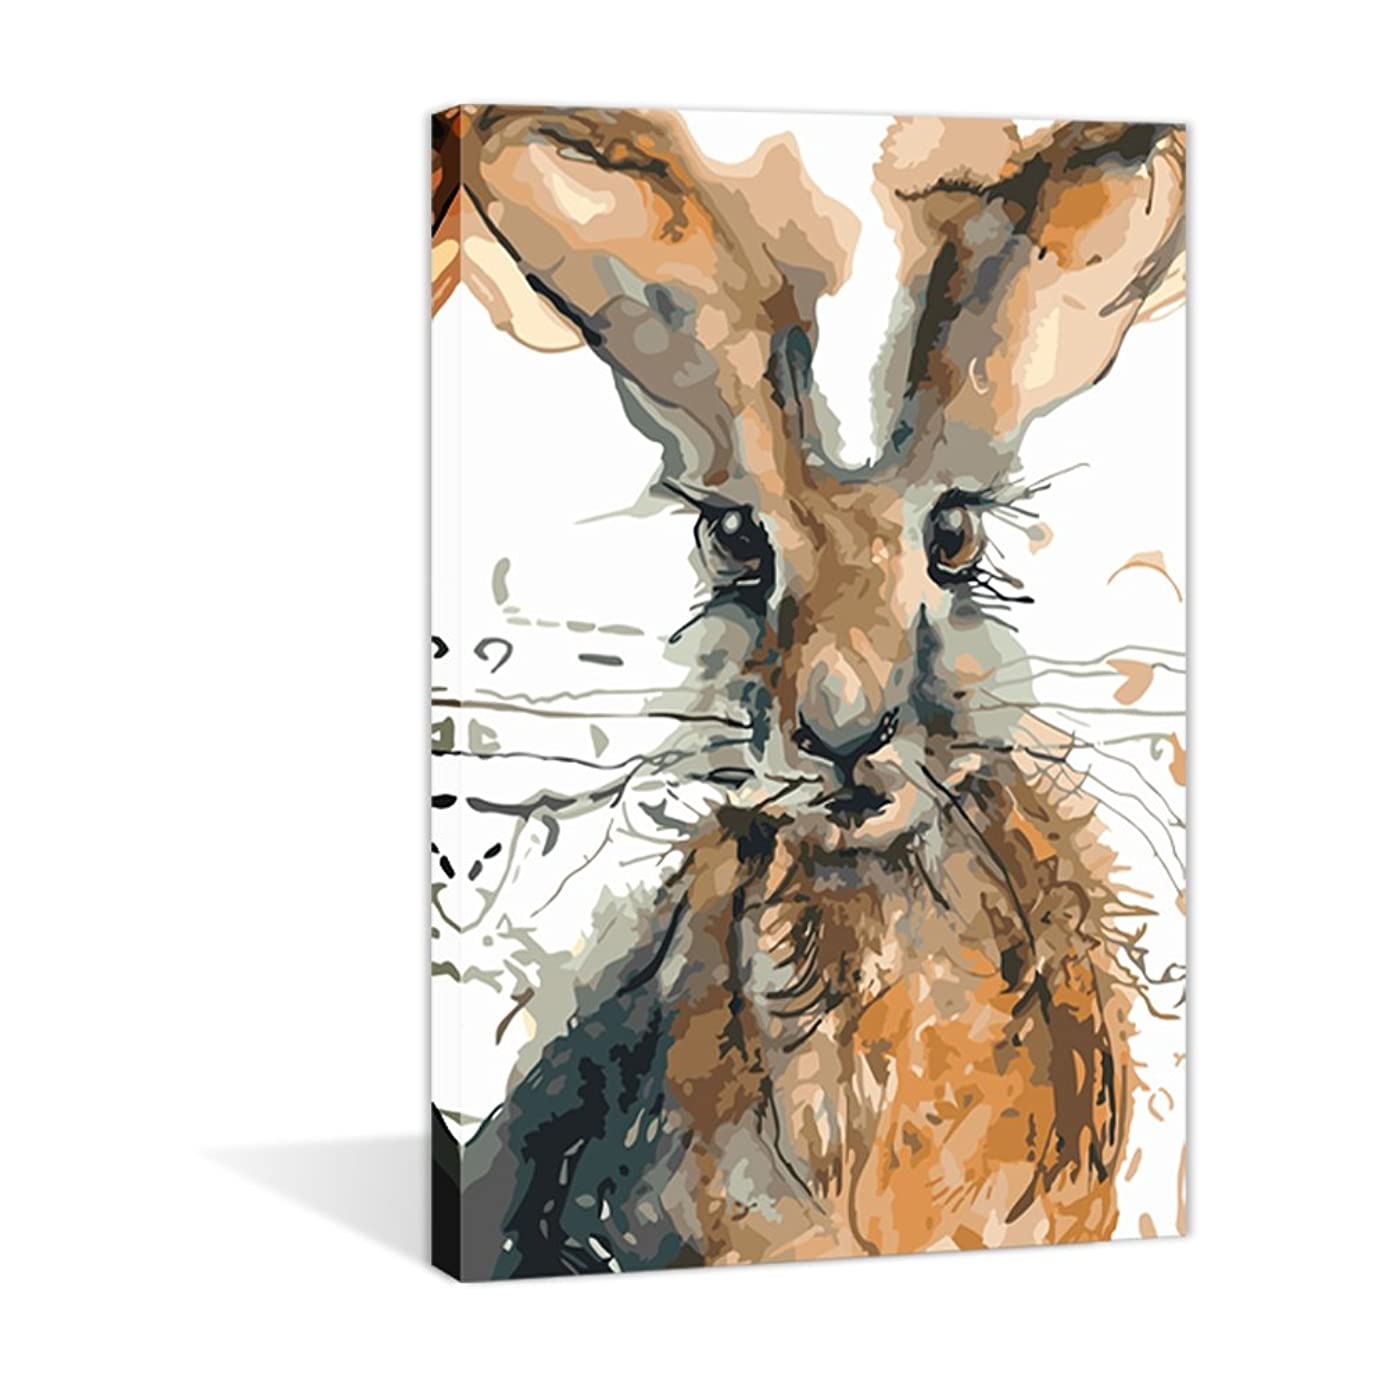 Paint by Numbers 16 x 20 inch Canvas Art Kits DIY Oil Painting for Kids/Students/Adults Beginner Wall Decorative Painting, Cute Animal Rabbit(Frameless)